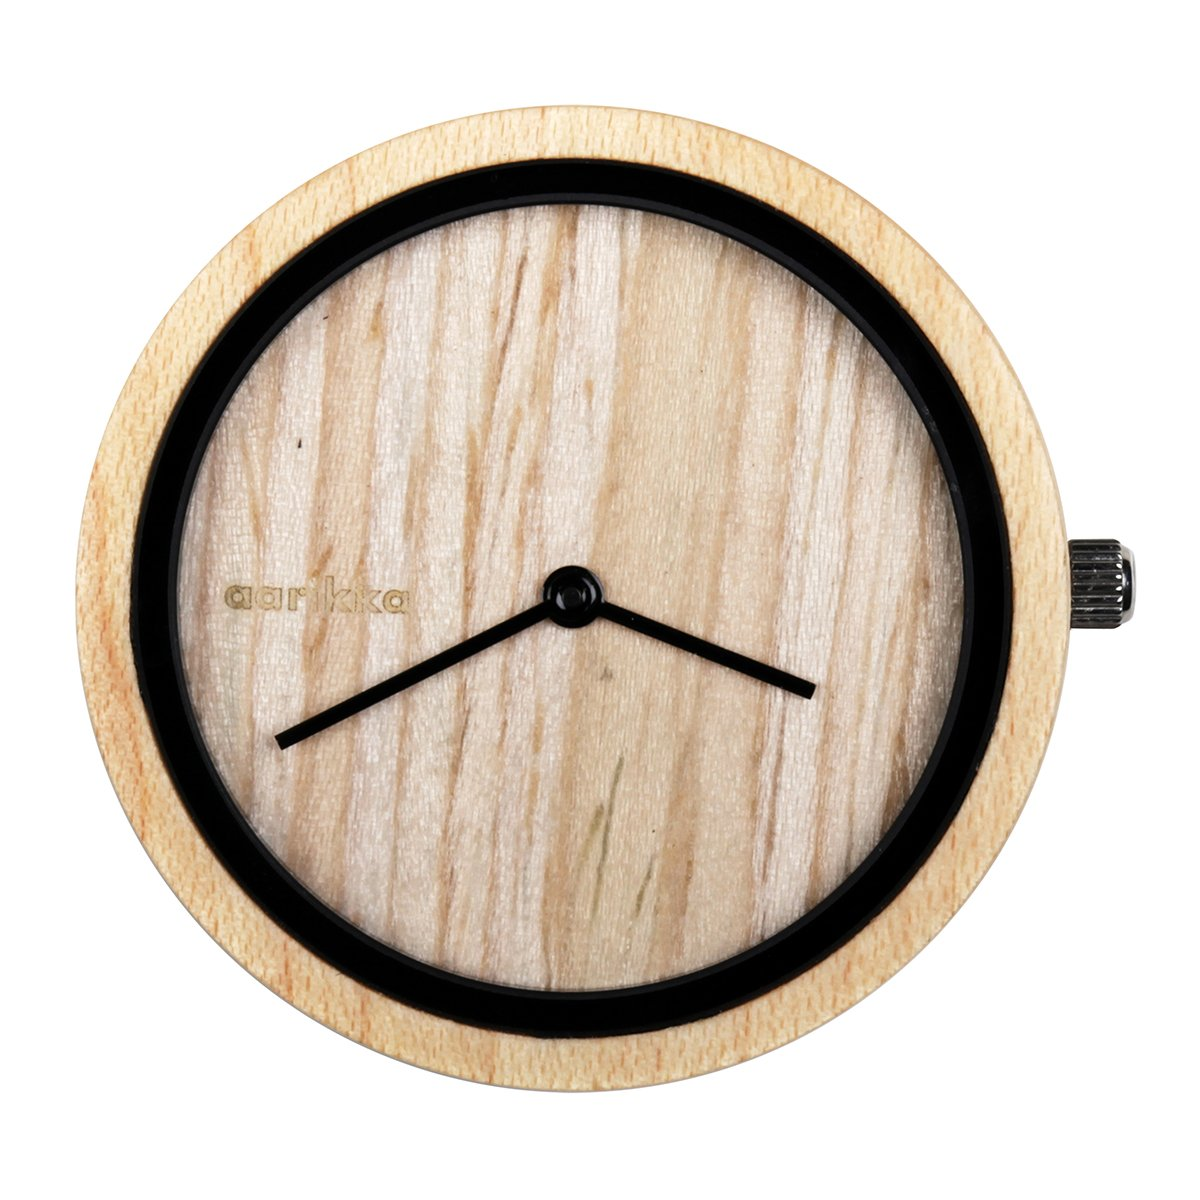 Aikapuu clock face small